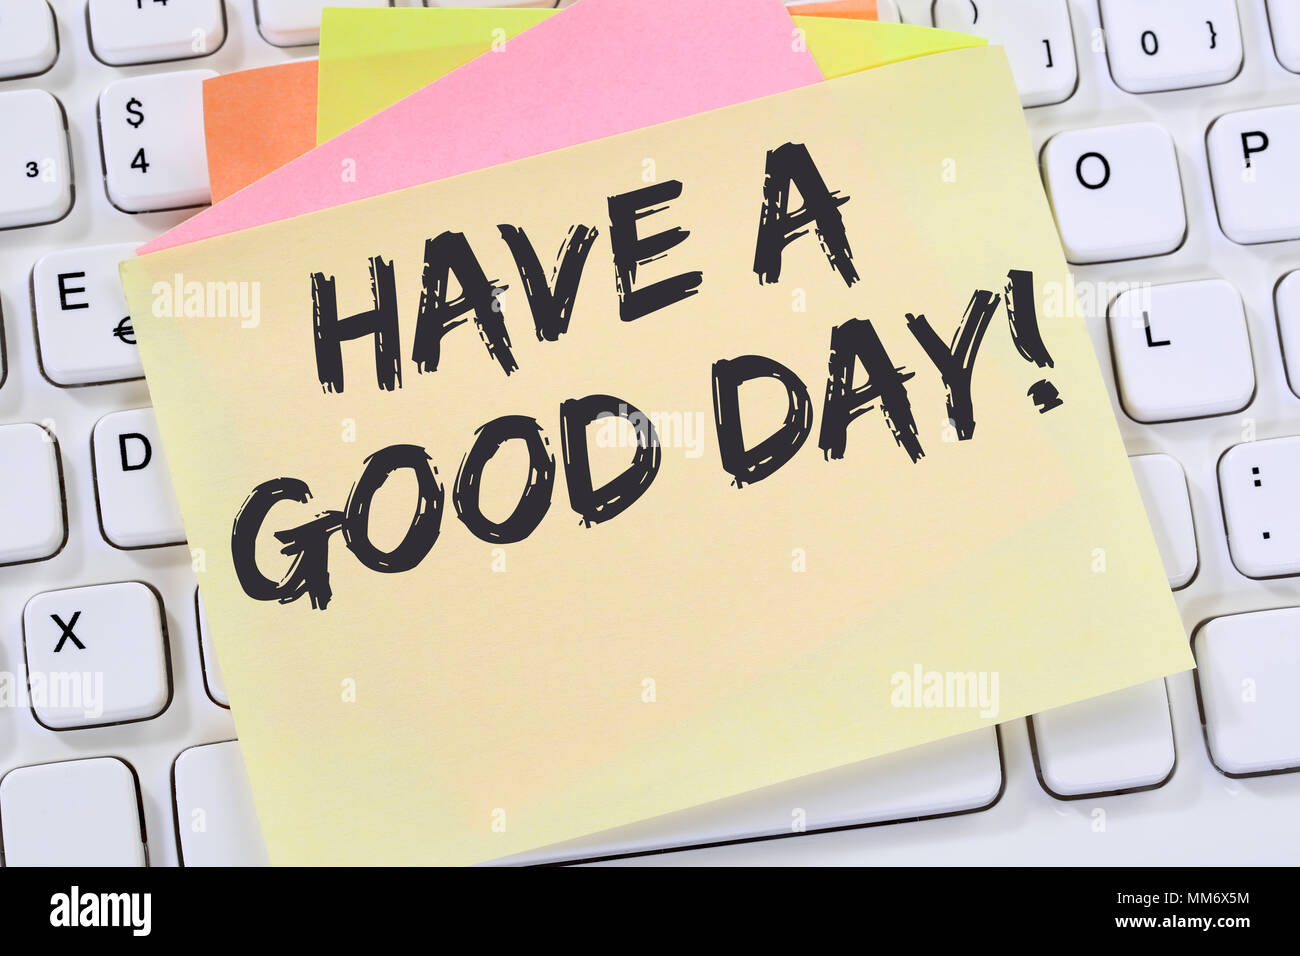 Have a good day nice wish work business concept note paper computer keyboard - Stock Image